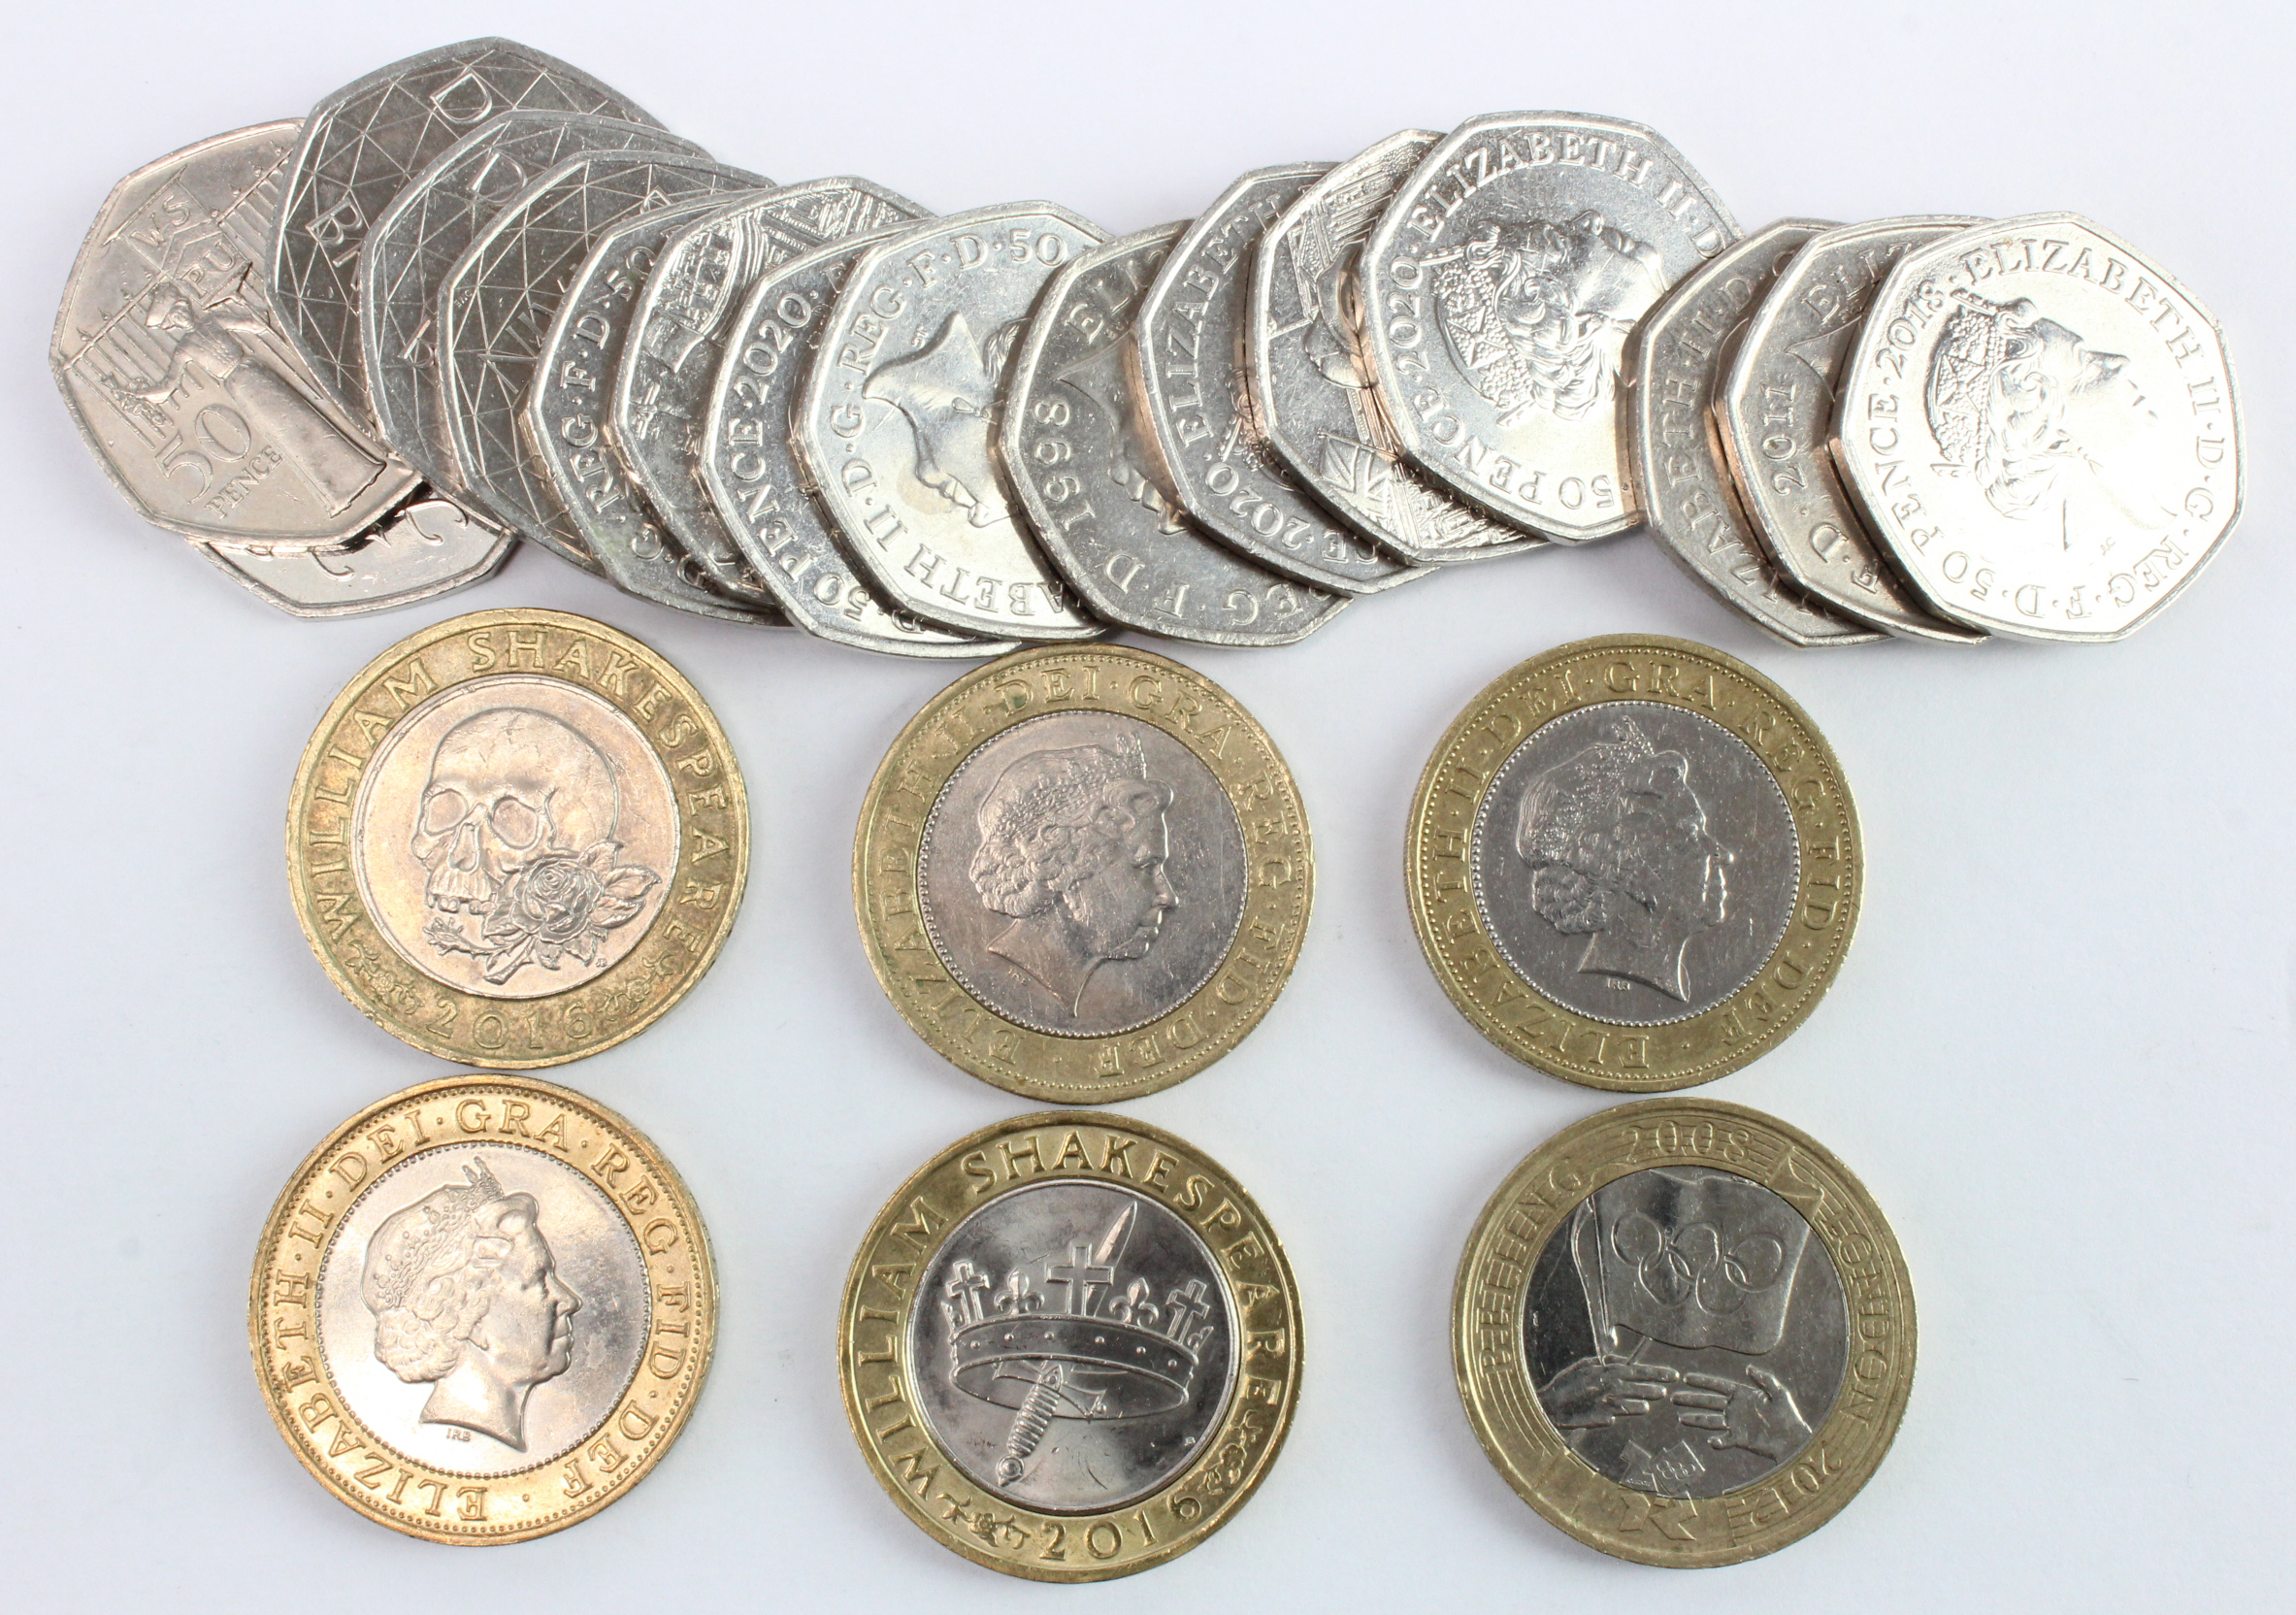 GB £2 Coins (6) and 50p's (16), commemorative currency issues. Noted Manchester Games £2 2002